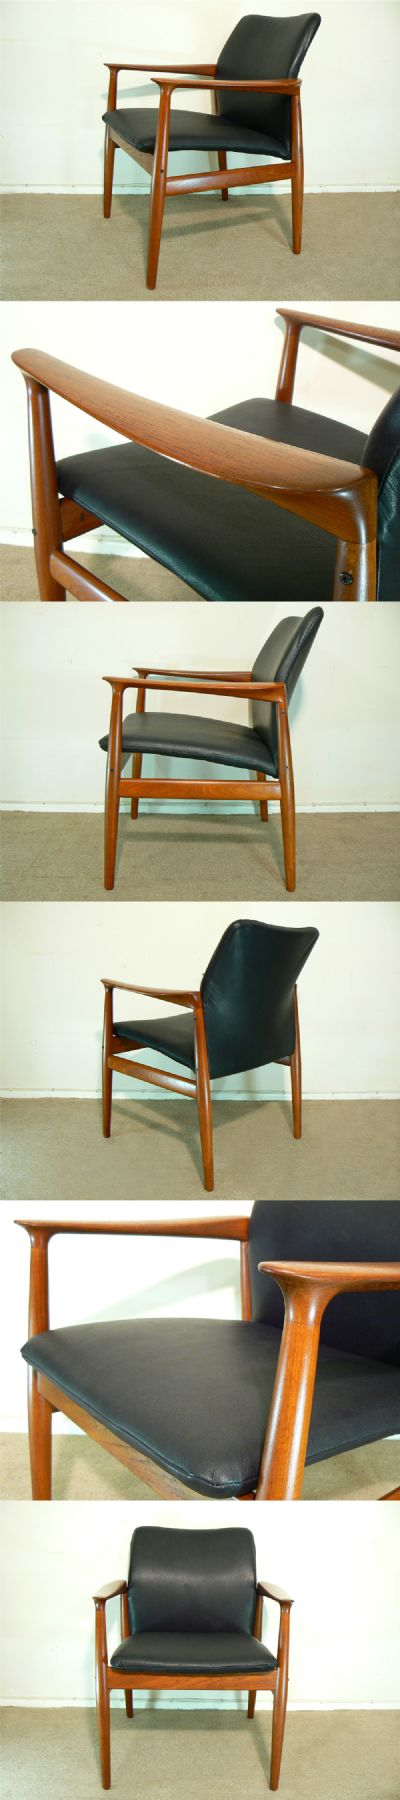 A teak armchair, c1960s. Manufactured by Glostrup Mobelfabrik and designed by Grete Jalke.  Newly covered in black hide.